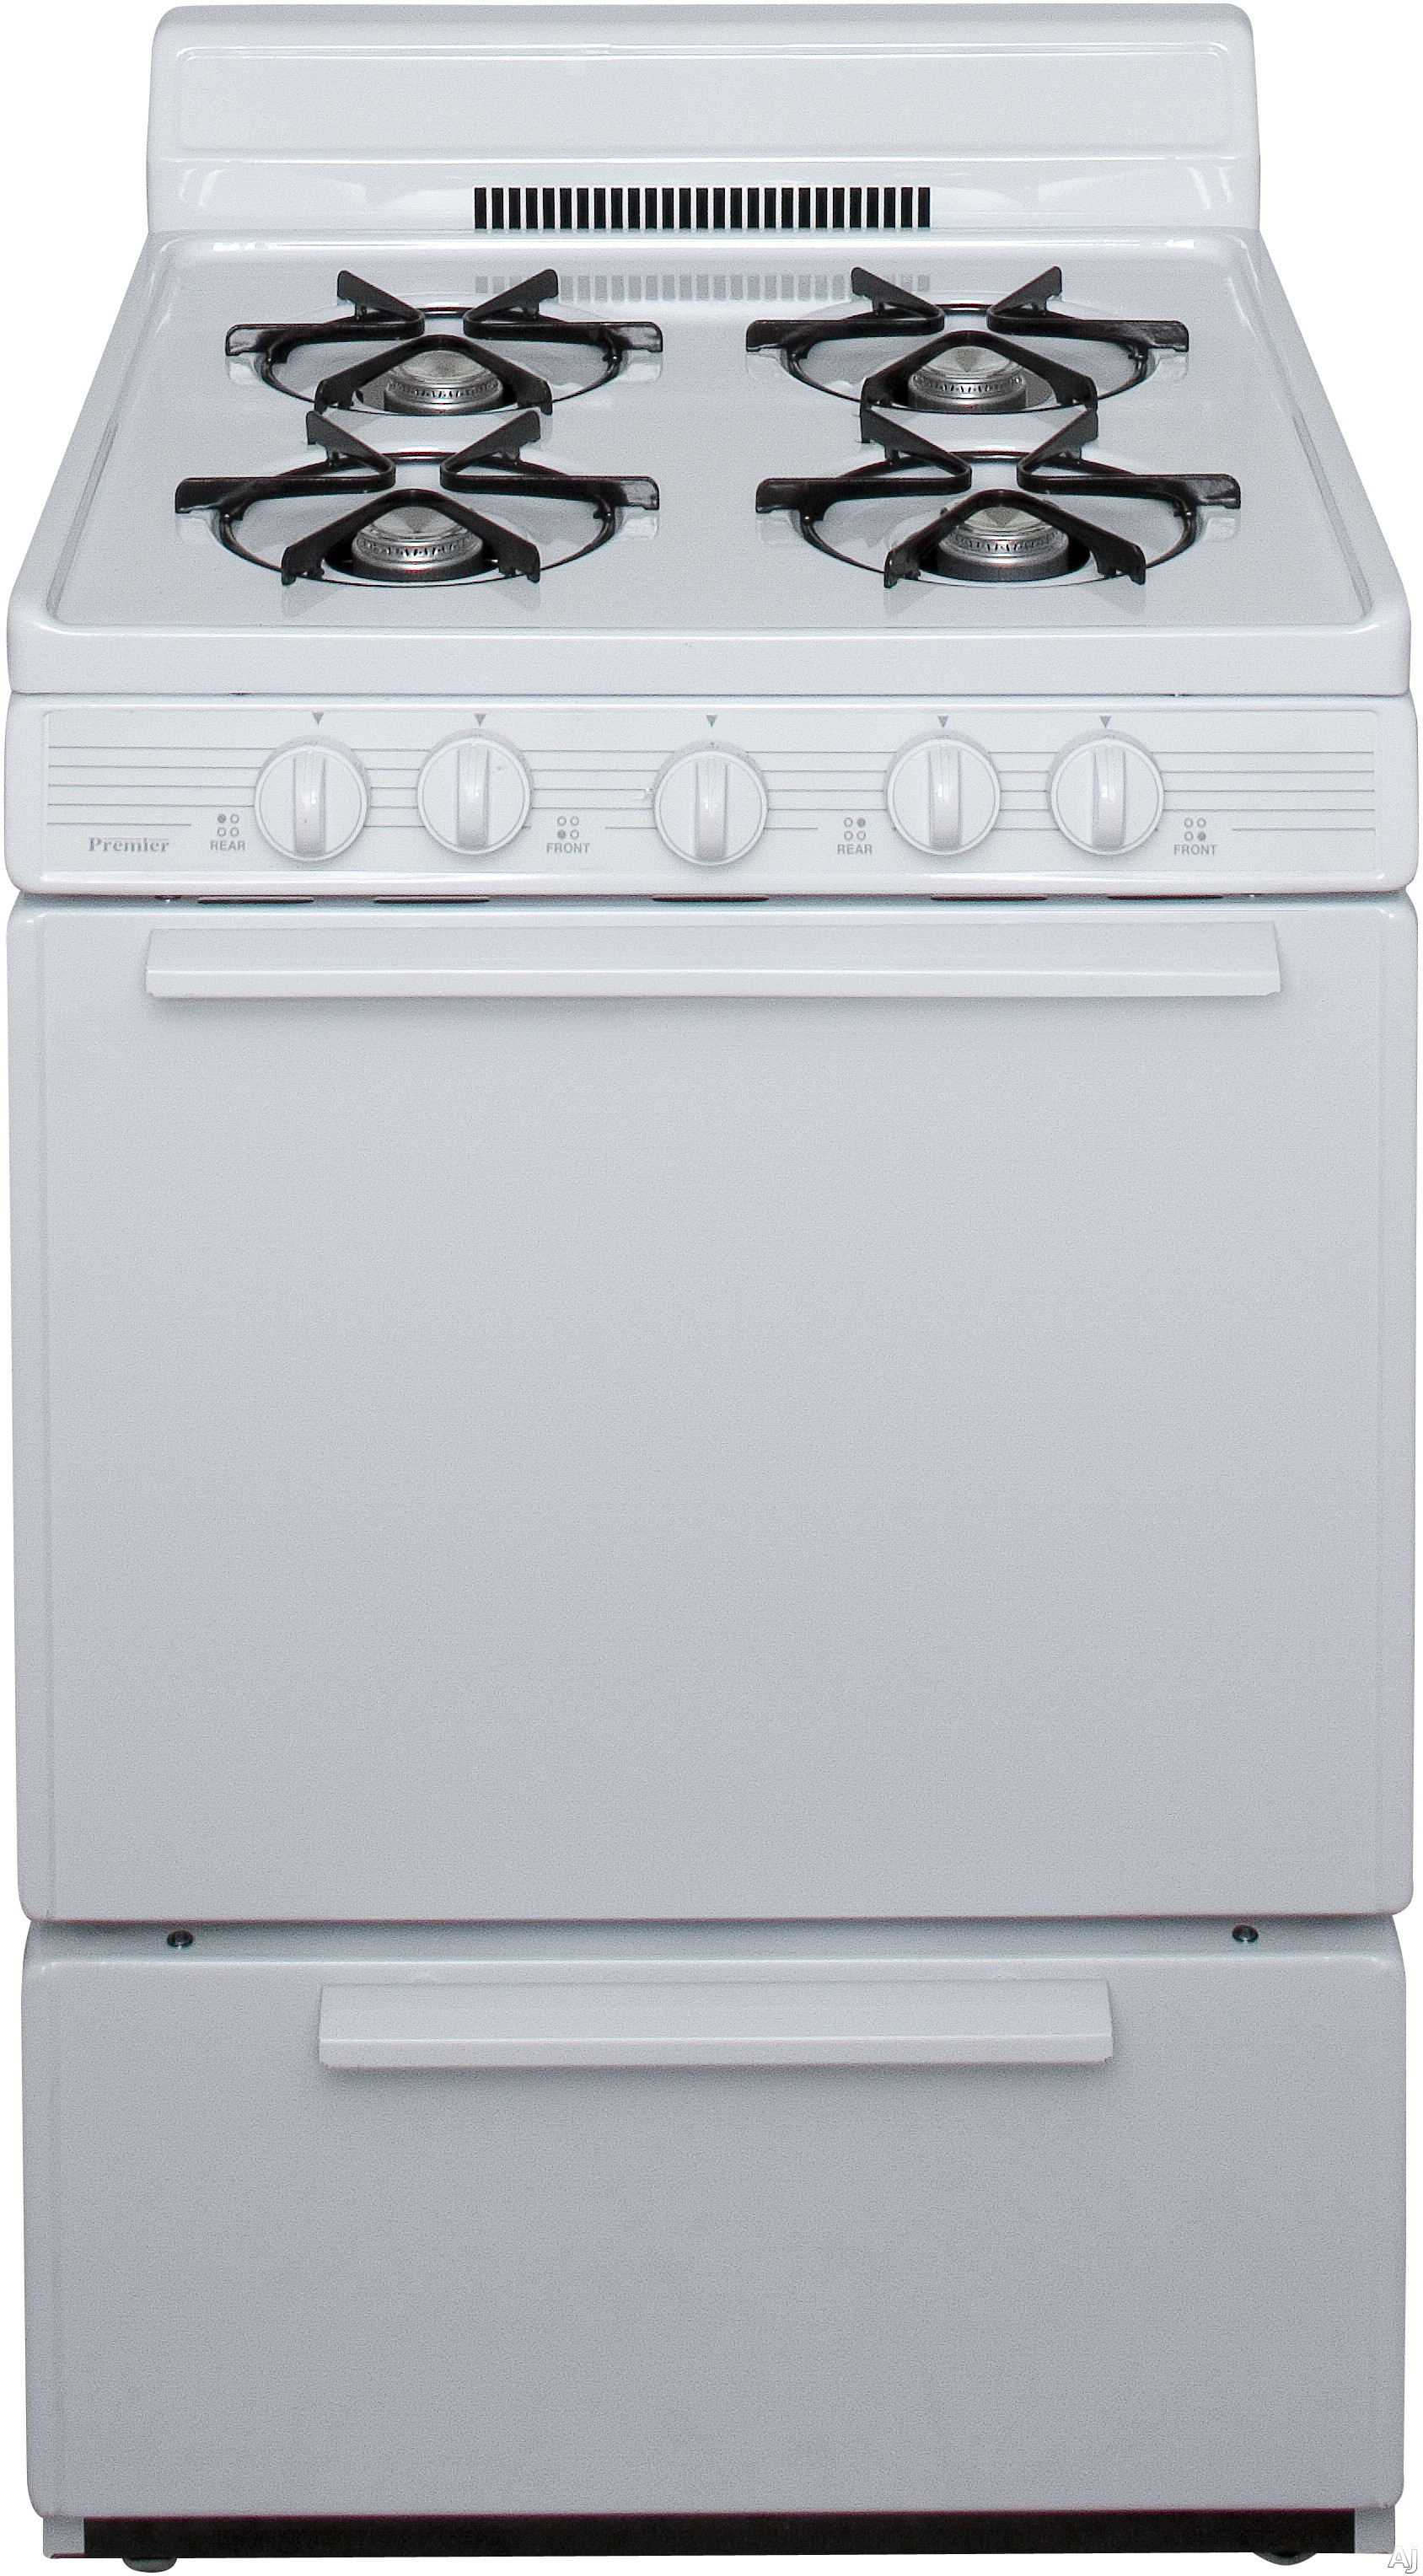 Premier BCK100XP 24 Inch Freestanding Gas Range with 4 Open Burners Battery Spark Ignition 17 000 BTU Burner and 4 Inch Porcelain Backguard